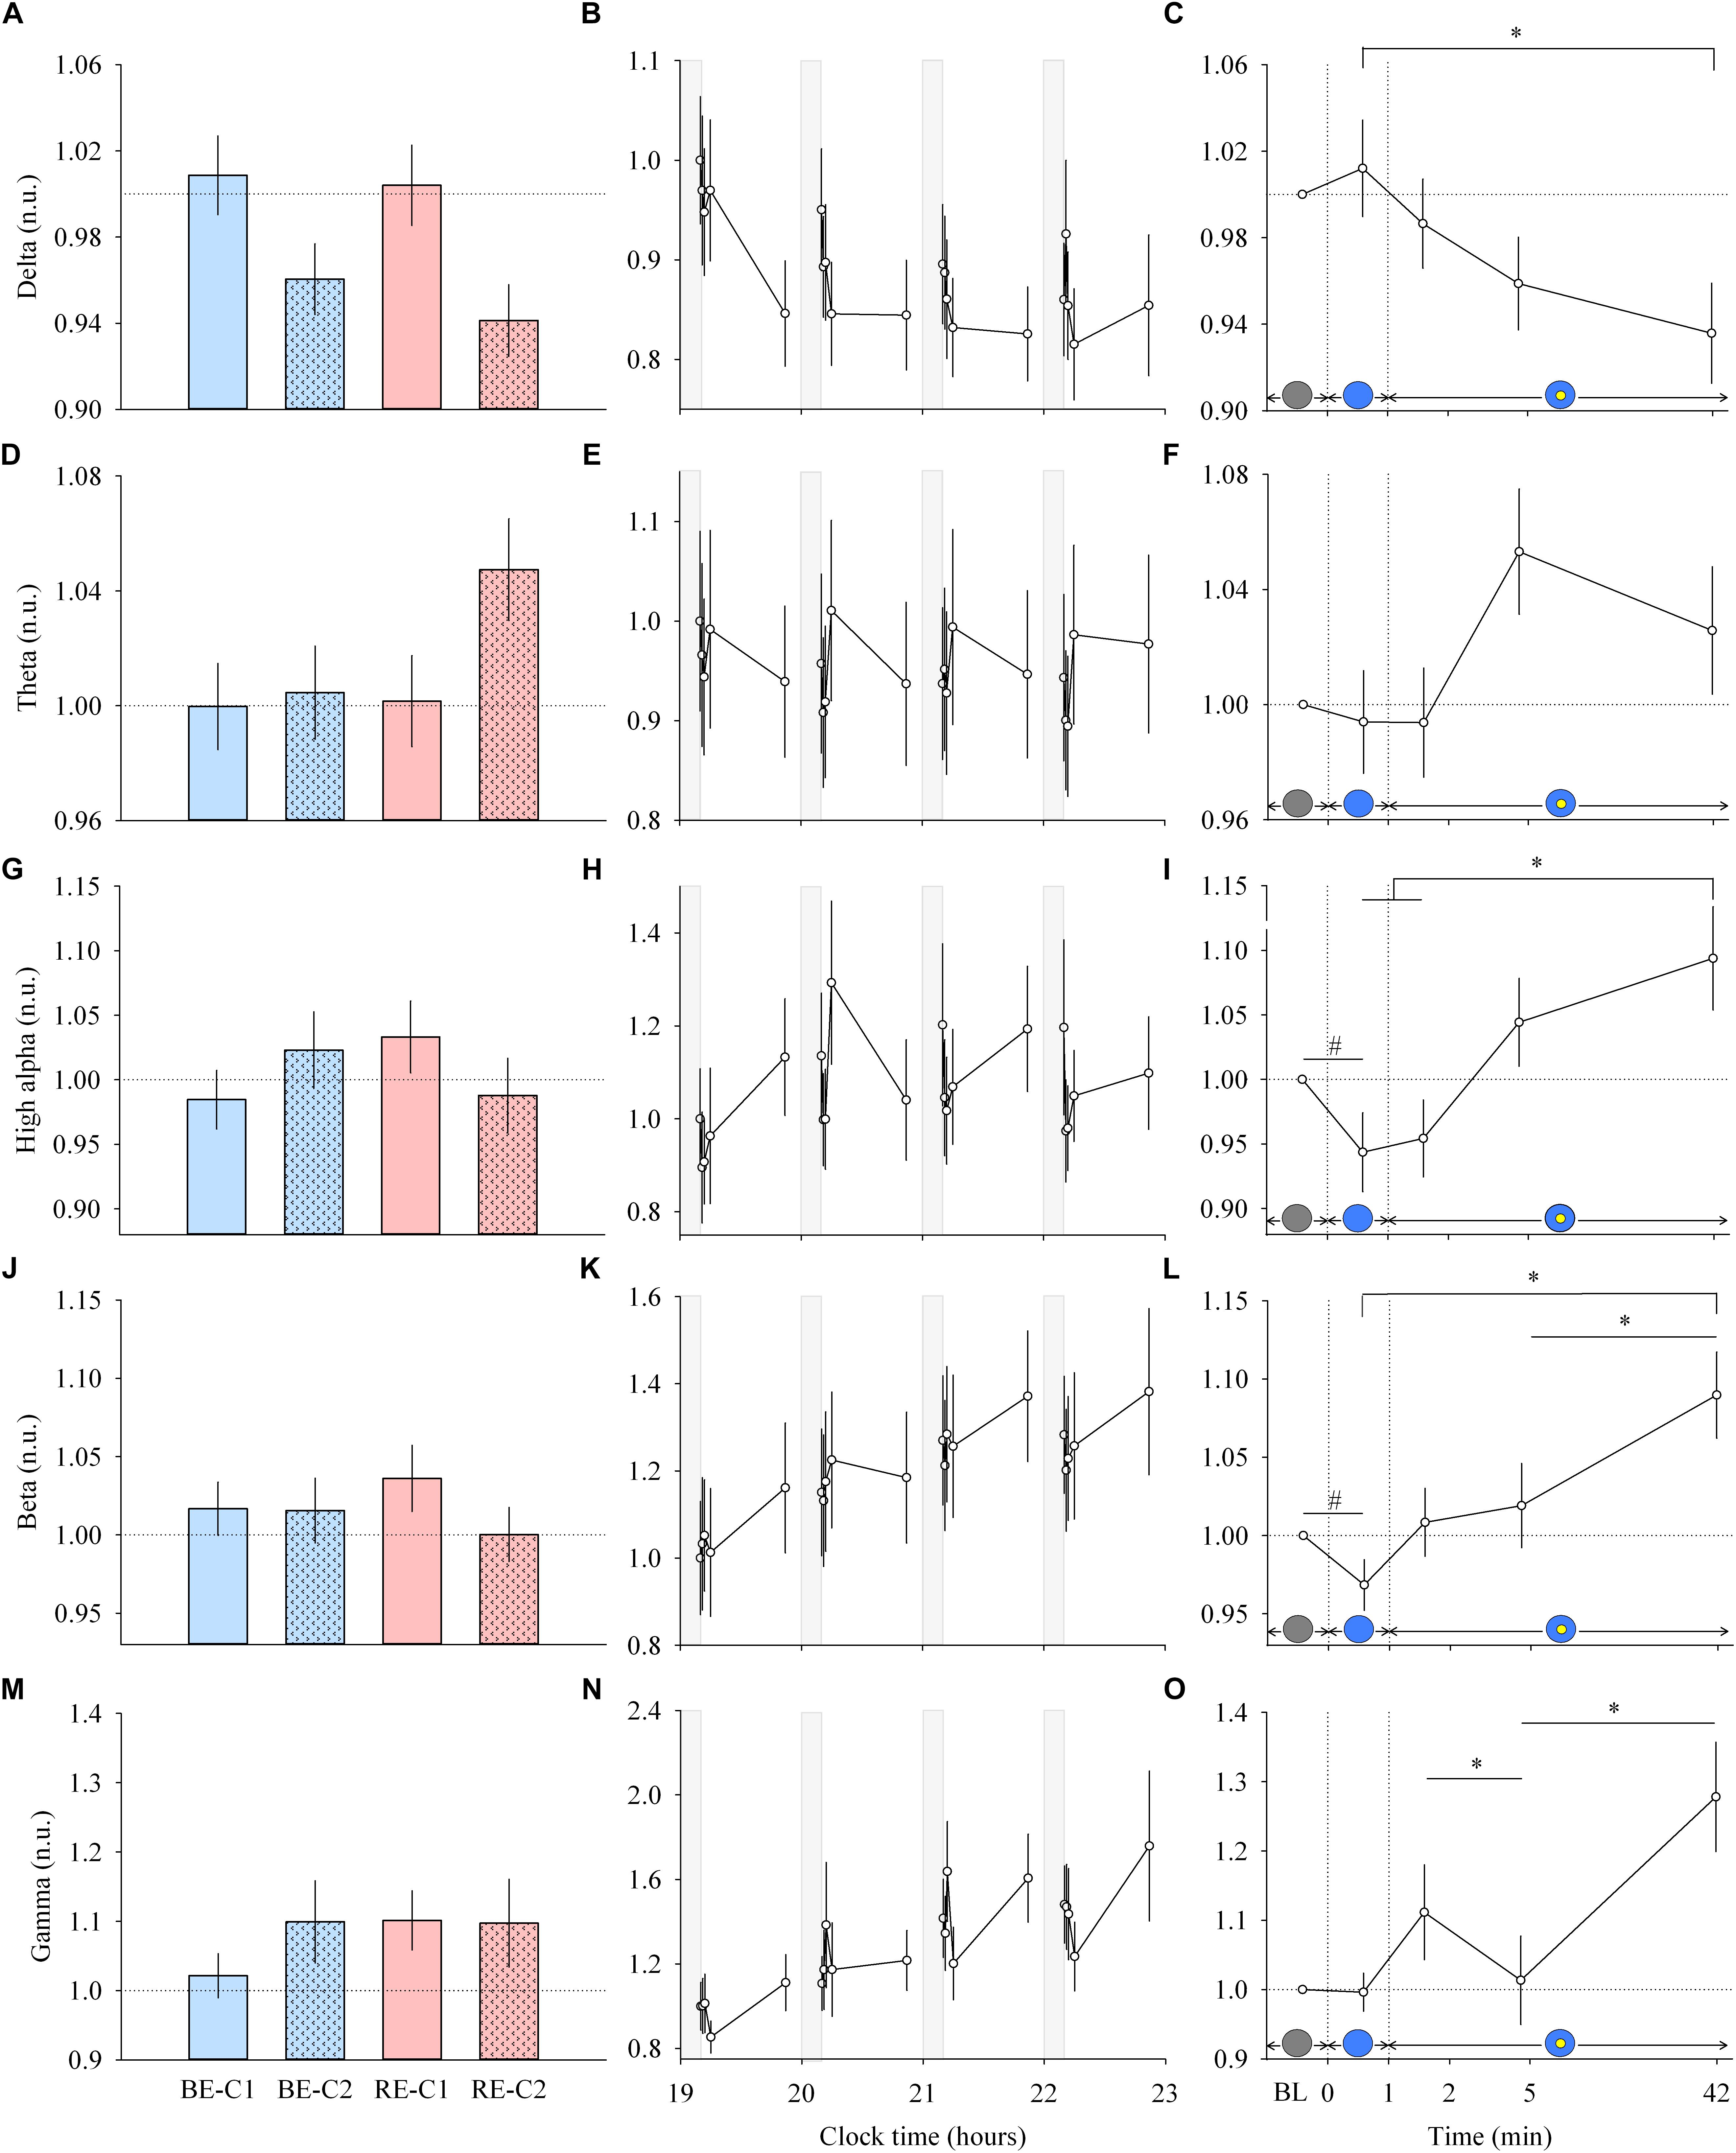 Frontiers | Dynamics of Non-visual Responses in Humans: As